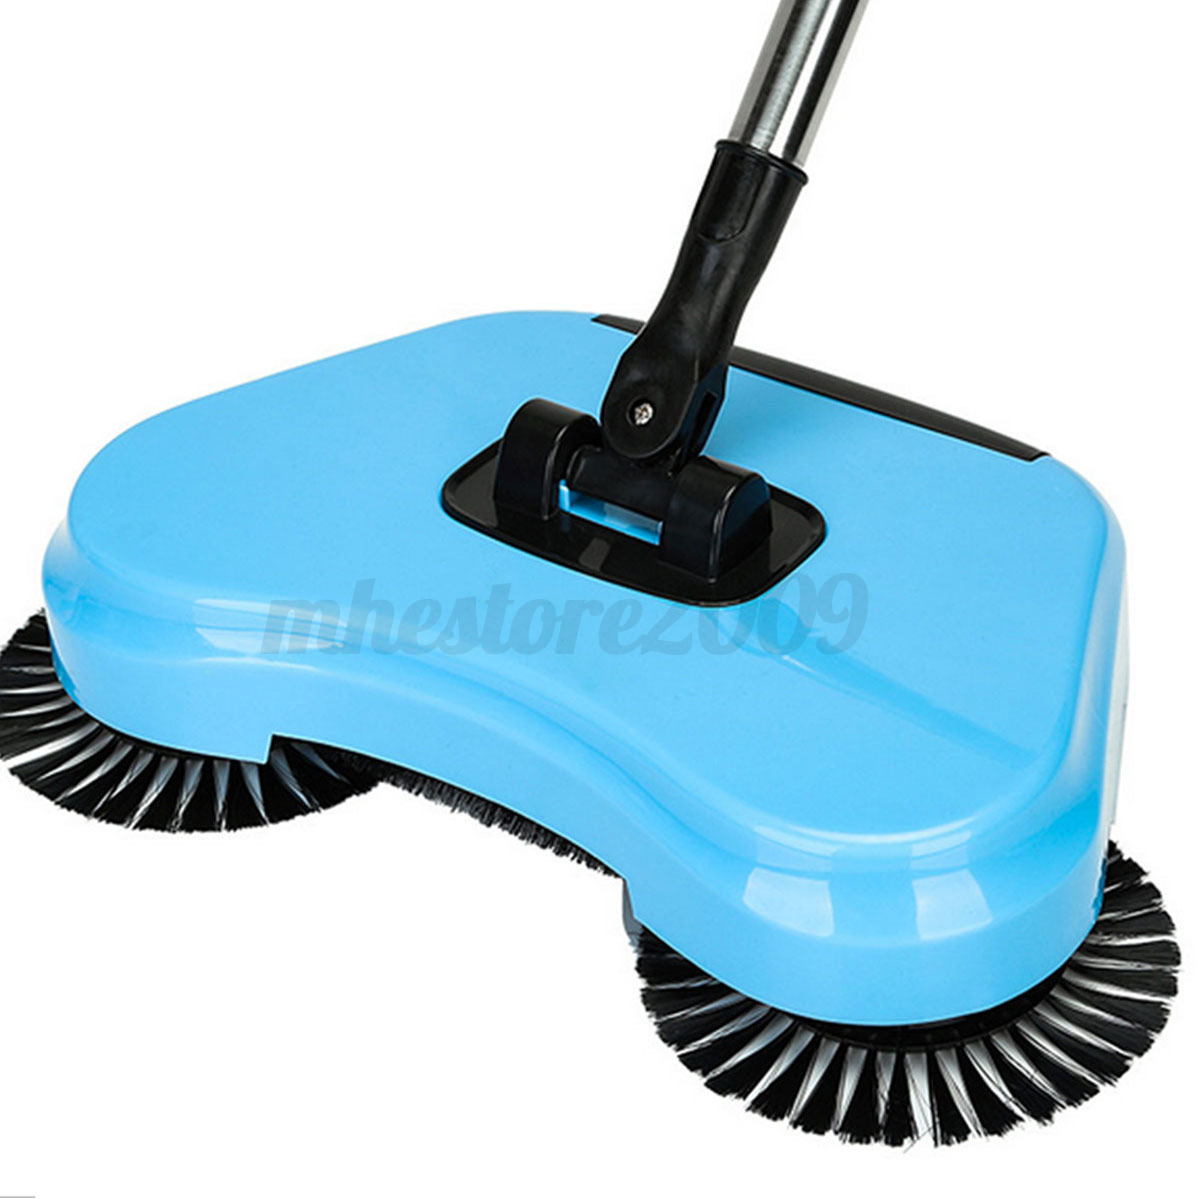 Spin Hand Push Broom Household Floor Dust Cleaning Sweeper